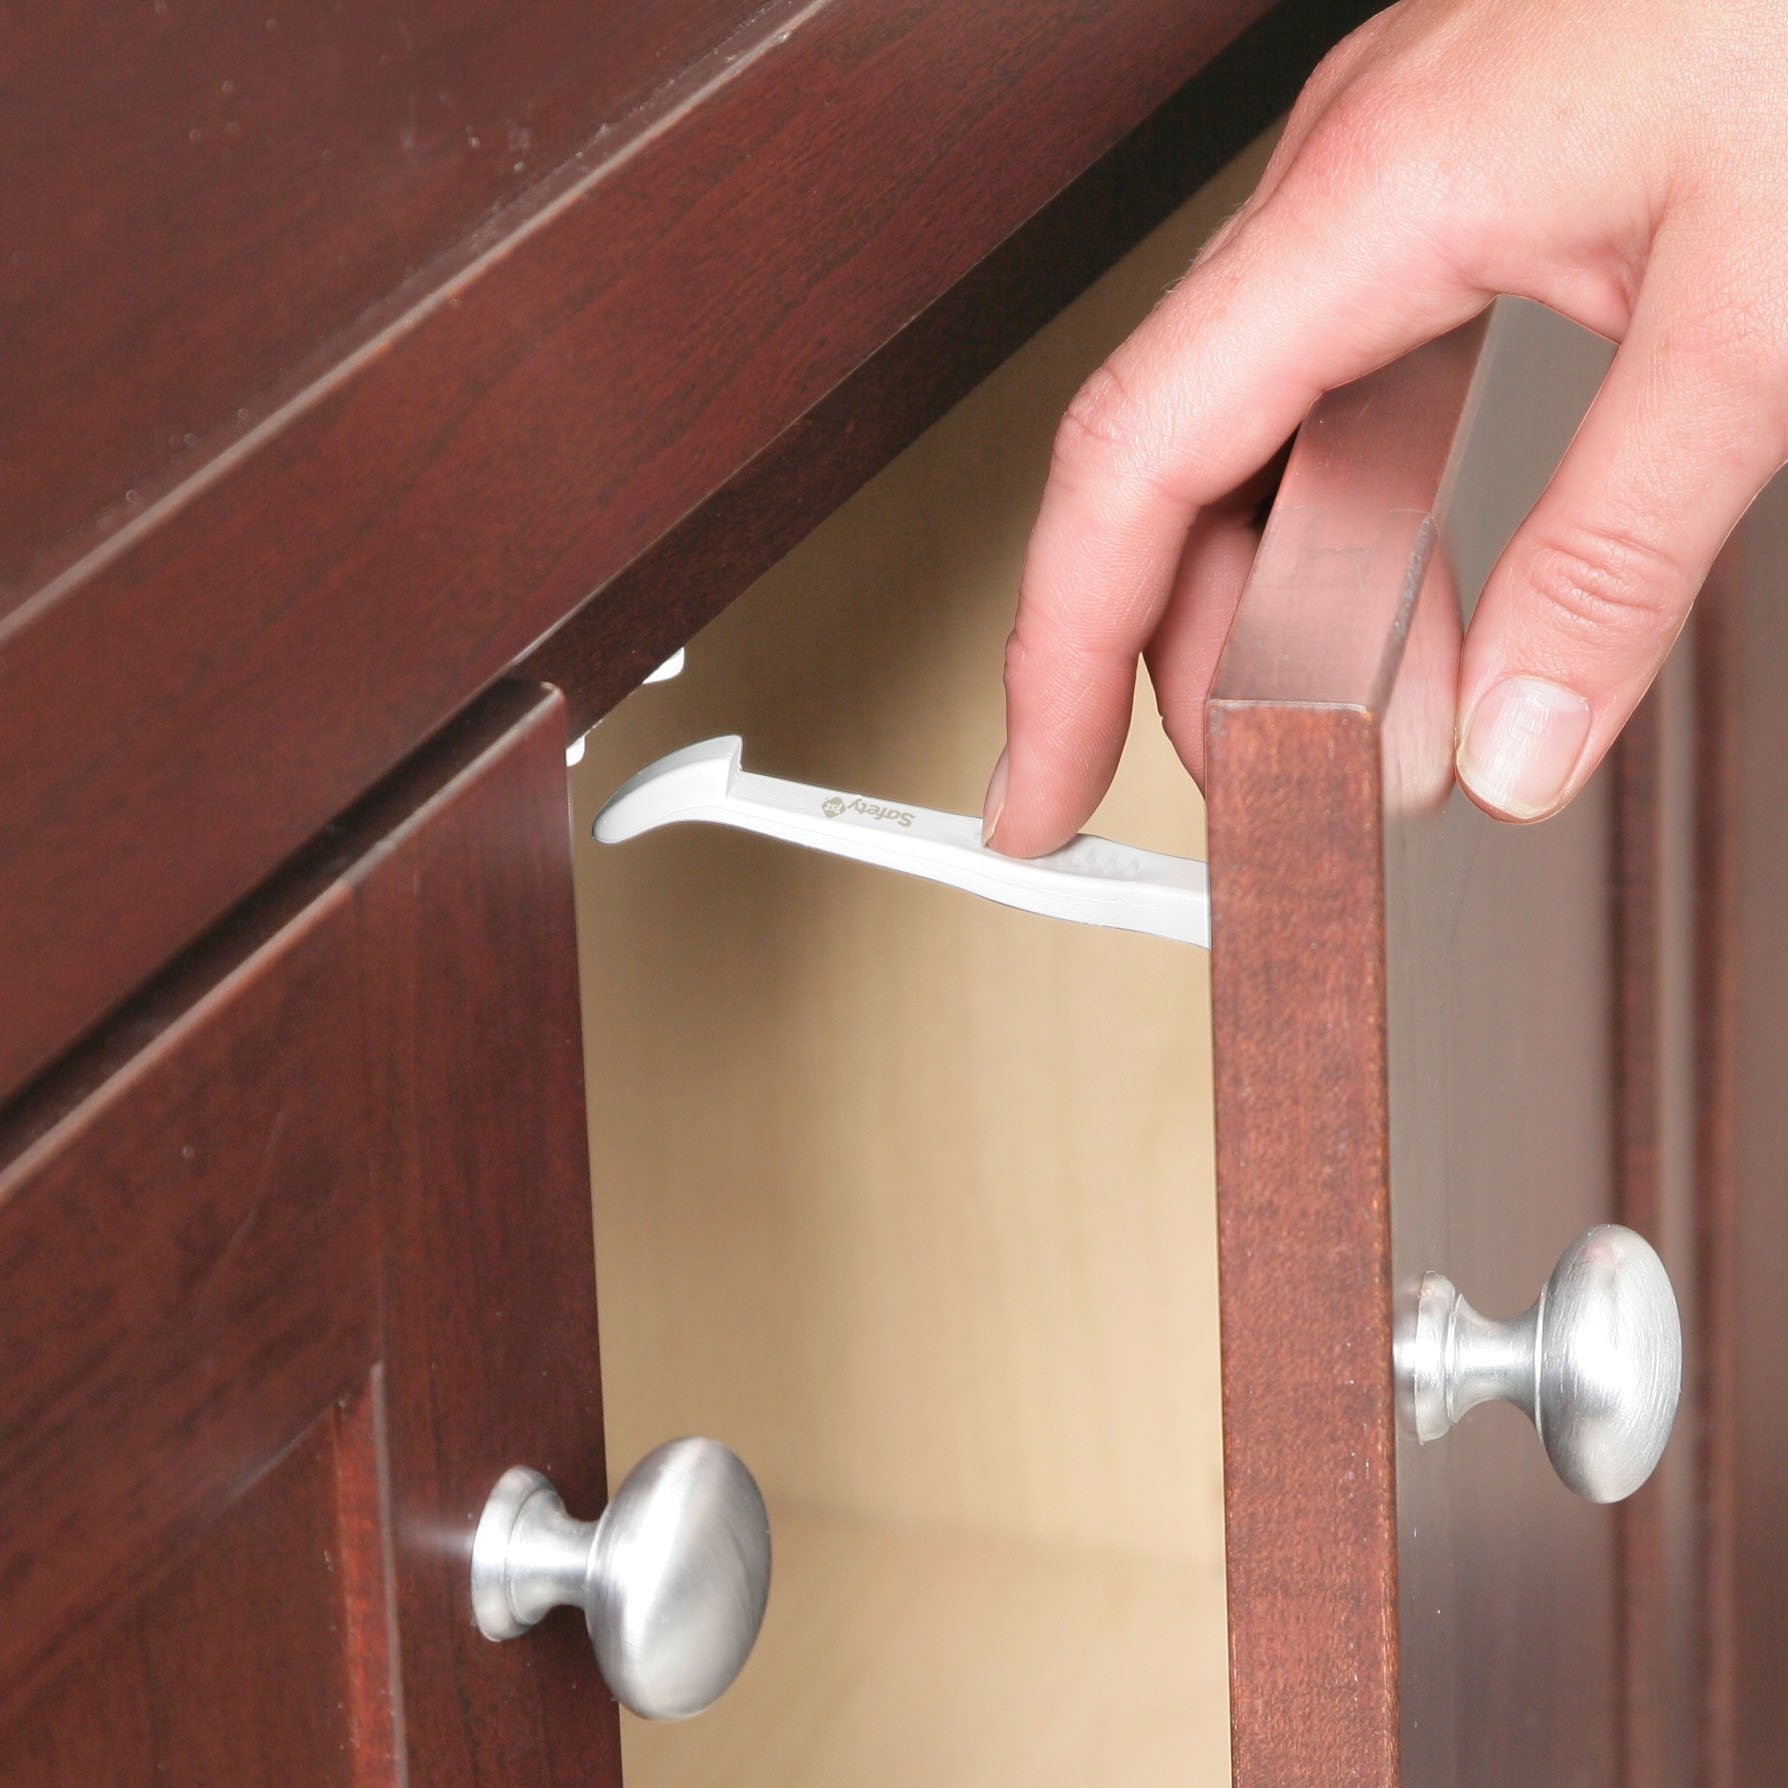 Safety 1st Cabinet and Drawer Latches, 7-Count